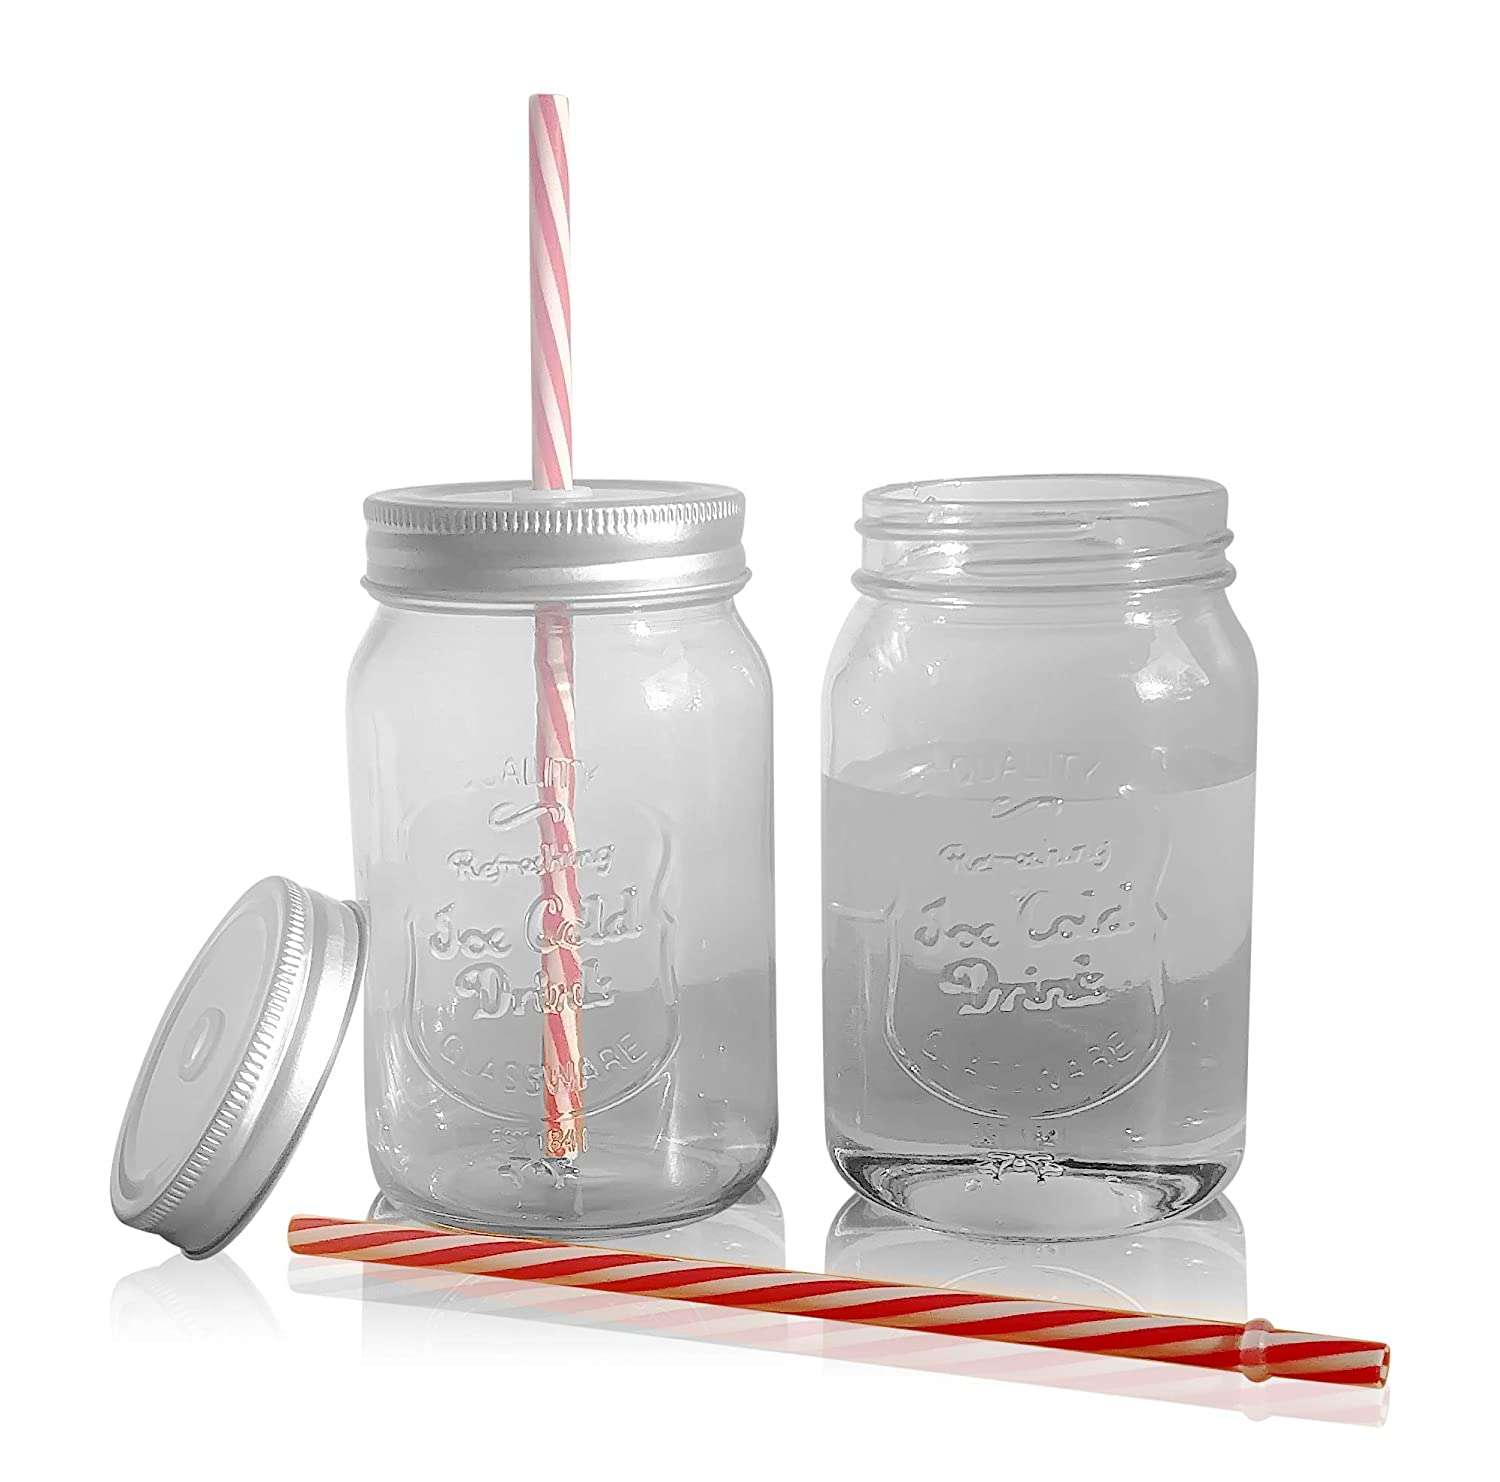 Smoothies Glass Bottle for Sipping Drinks Mason Jar Drinking Glasses Reusable Straws and Old Fashioned Caddy Shakes Regular Mouth Jars with Leakproof Tin Screw Cap Holes Lids Juices Set of 6